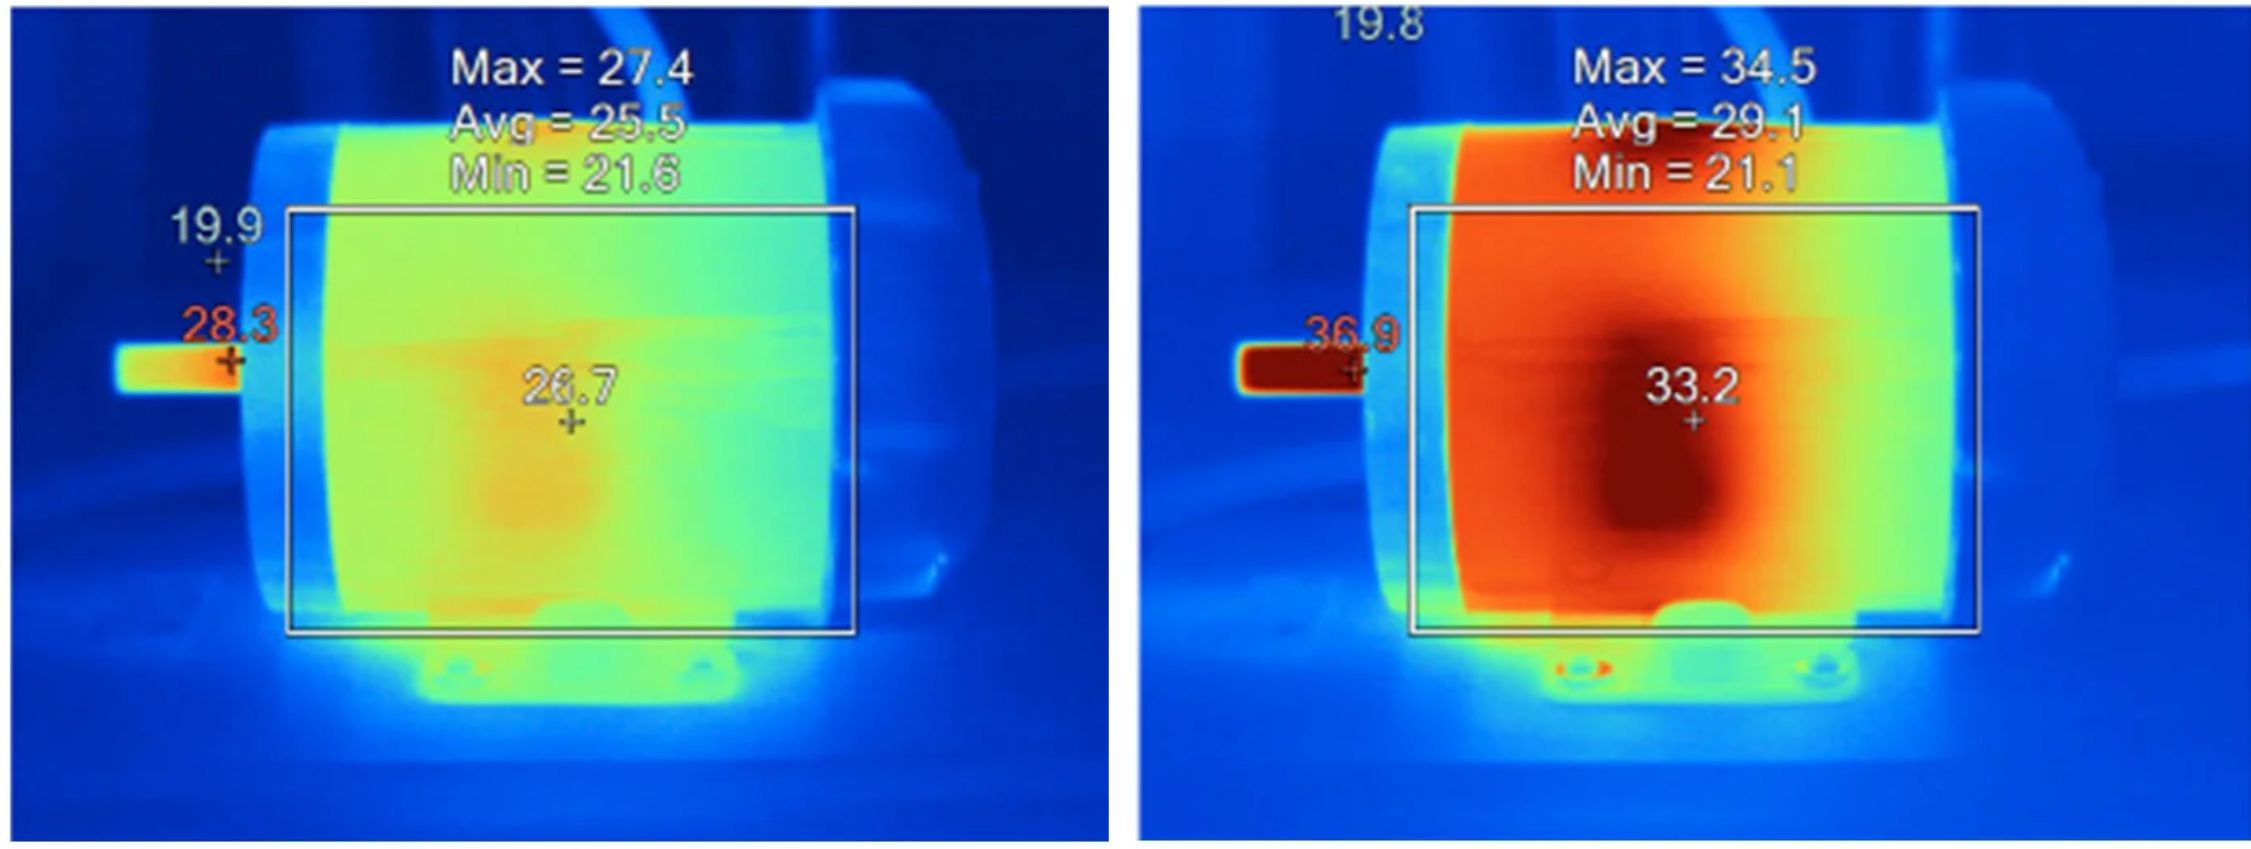 Thermal Image Motor benchmark comparison